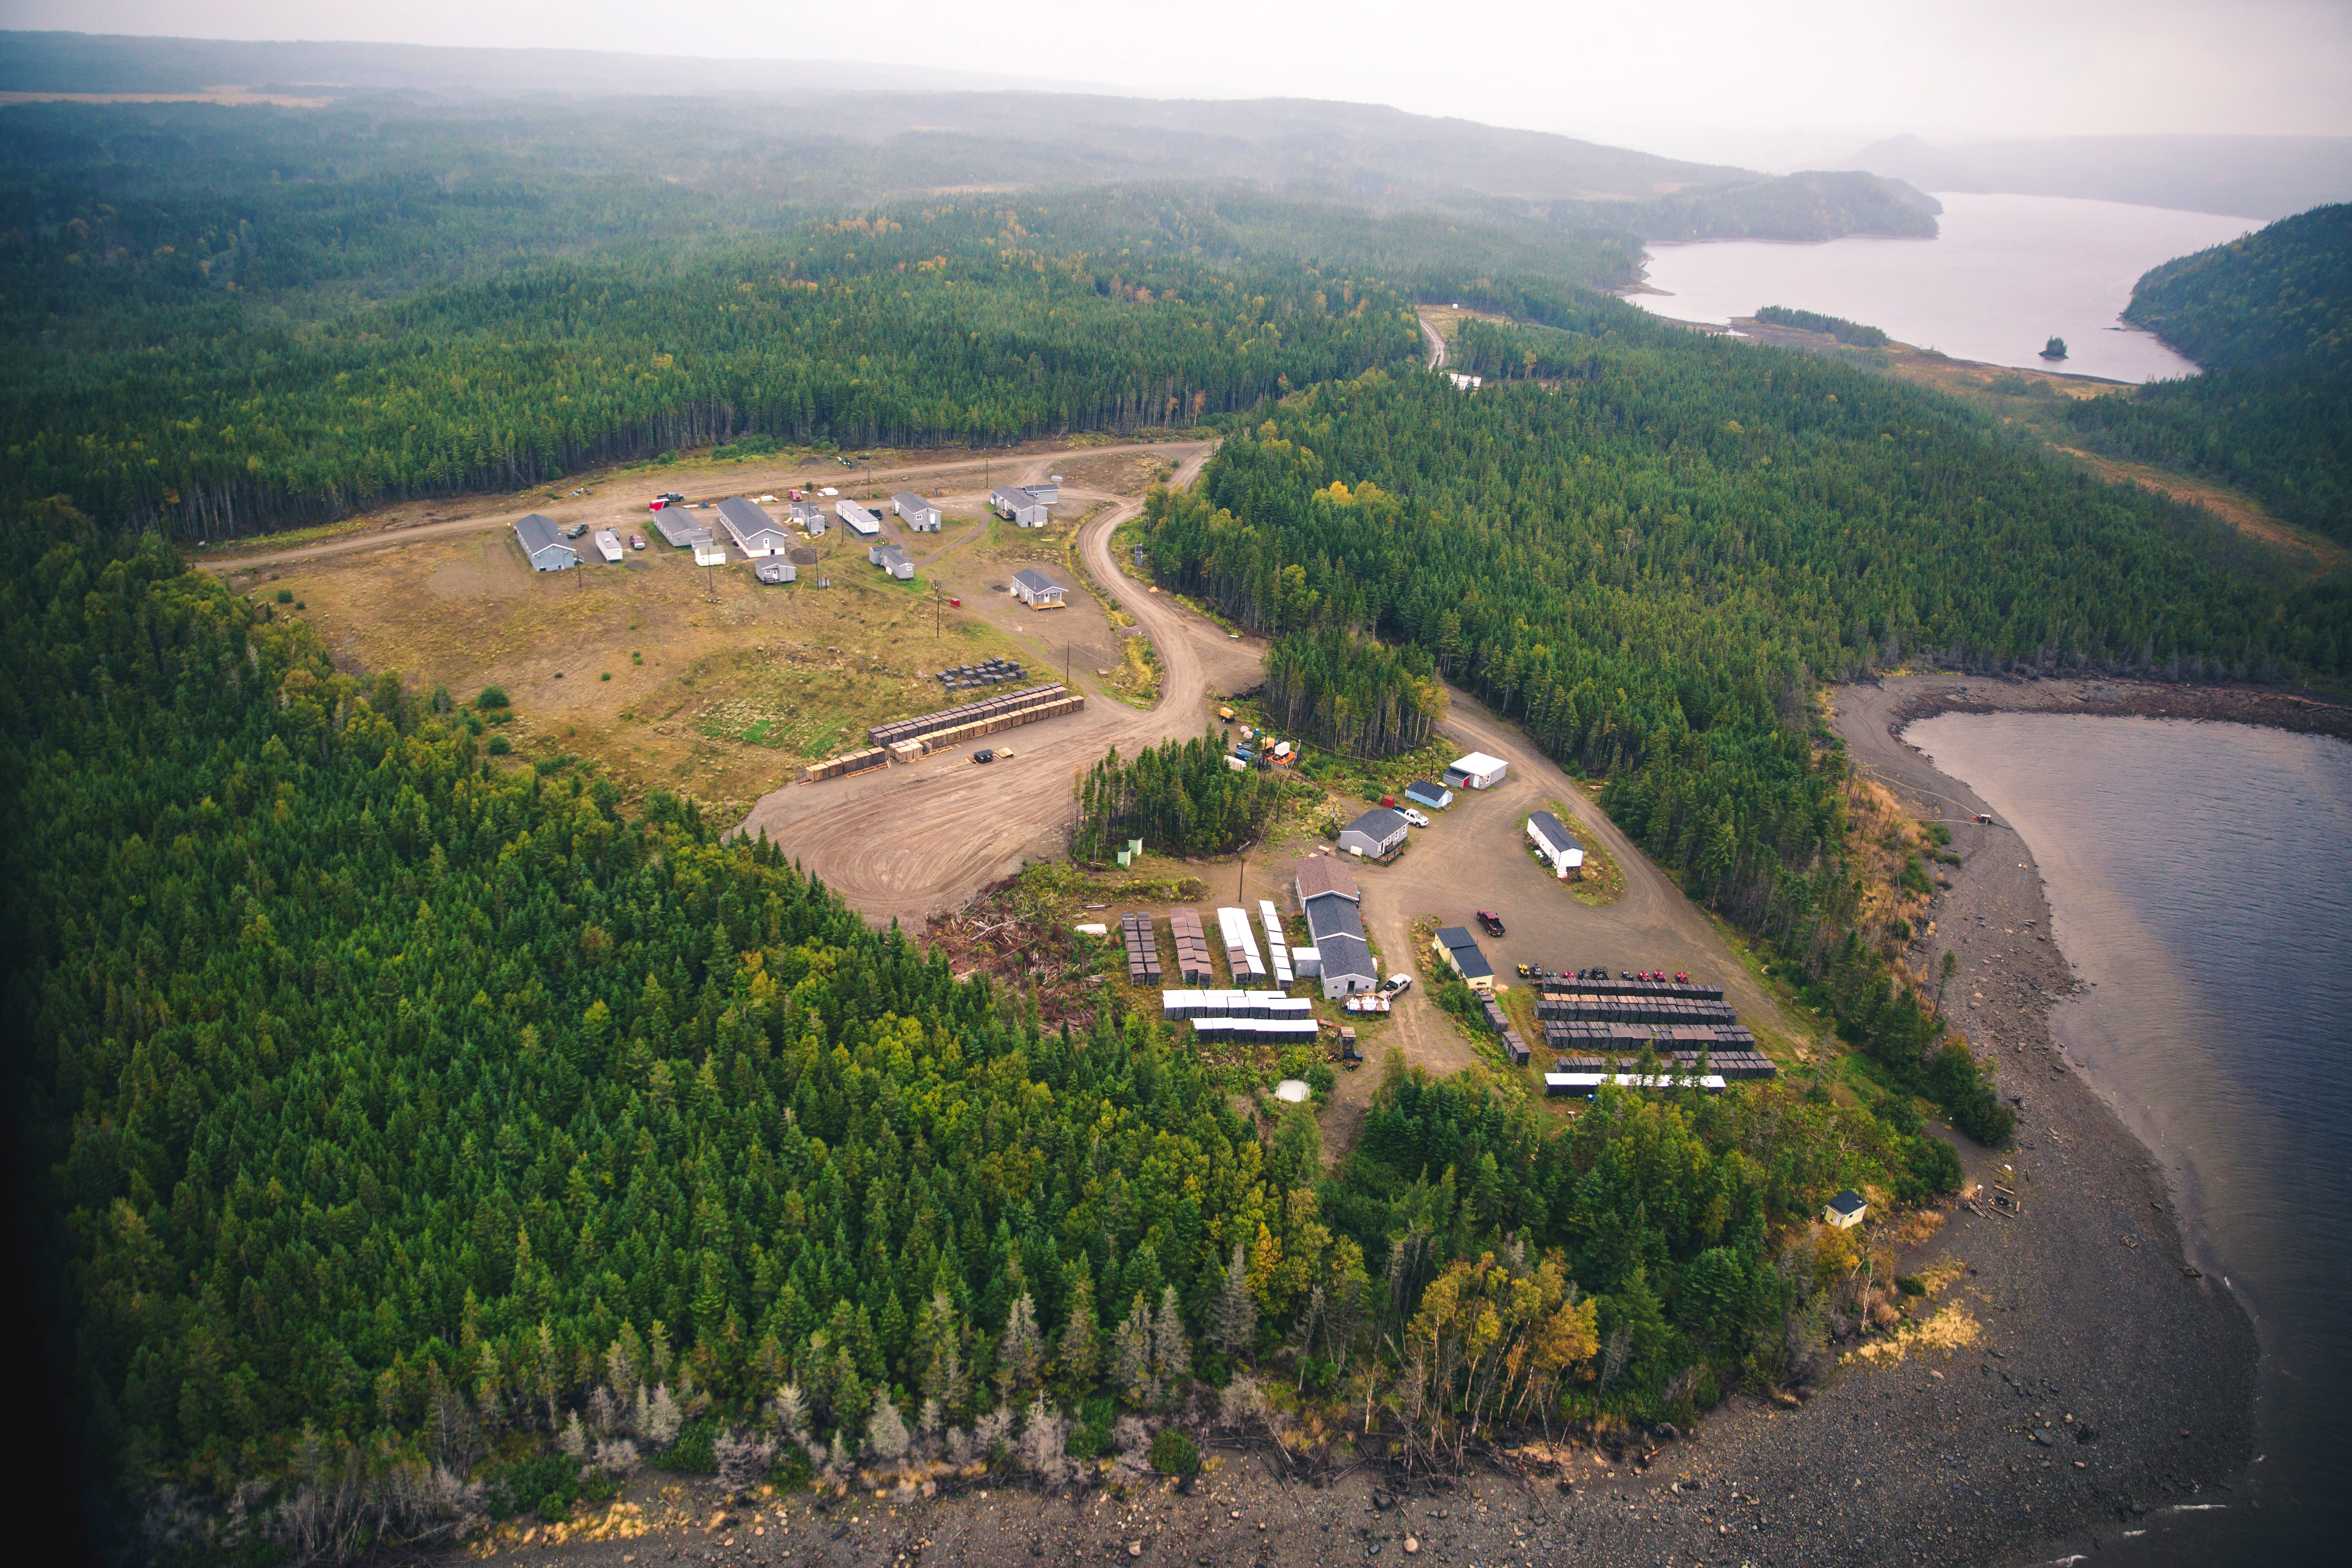 Marathon Gold's Valentine Lake project is anticipated to produce over a decade of employment for the region. Contributed photo